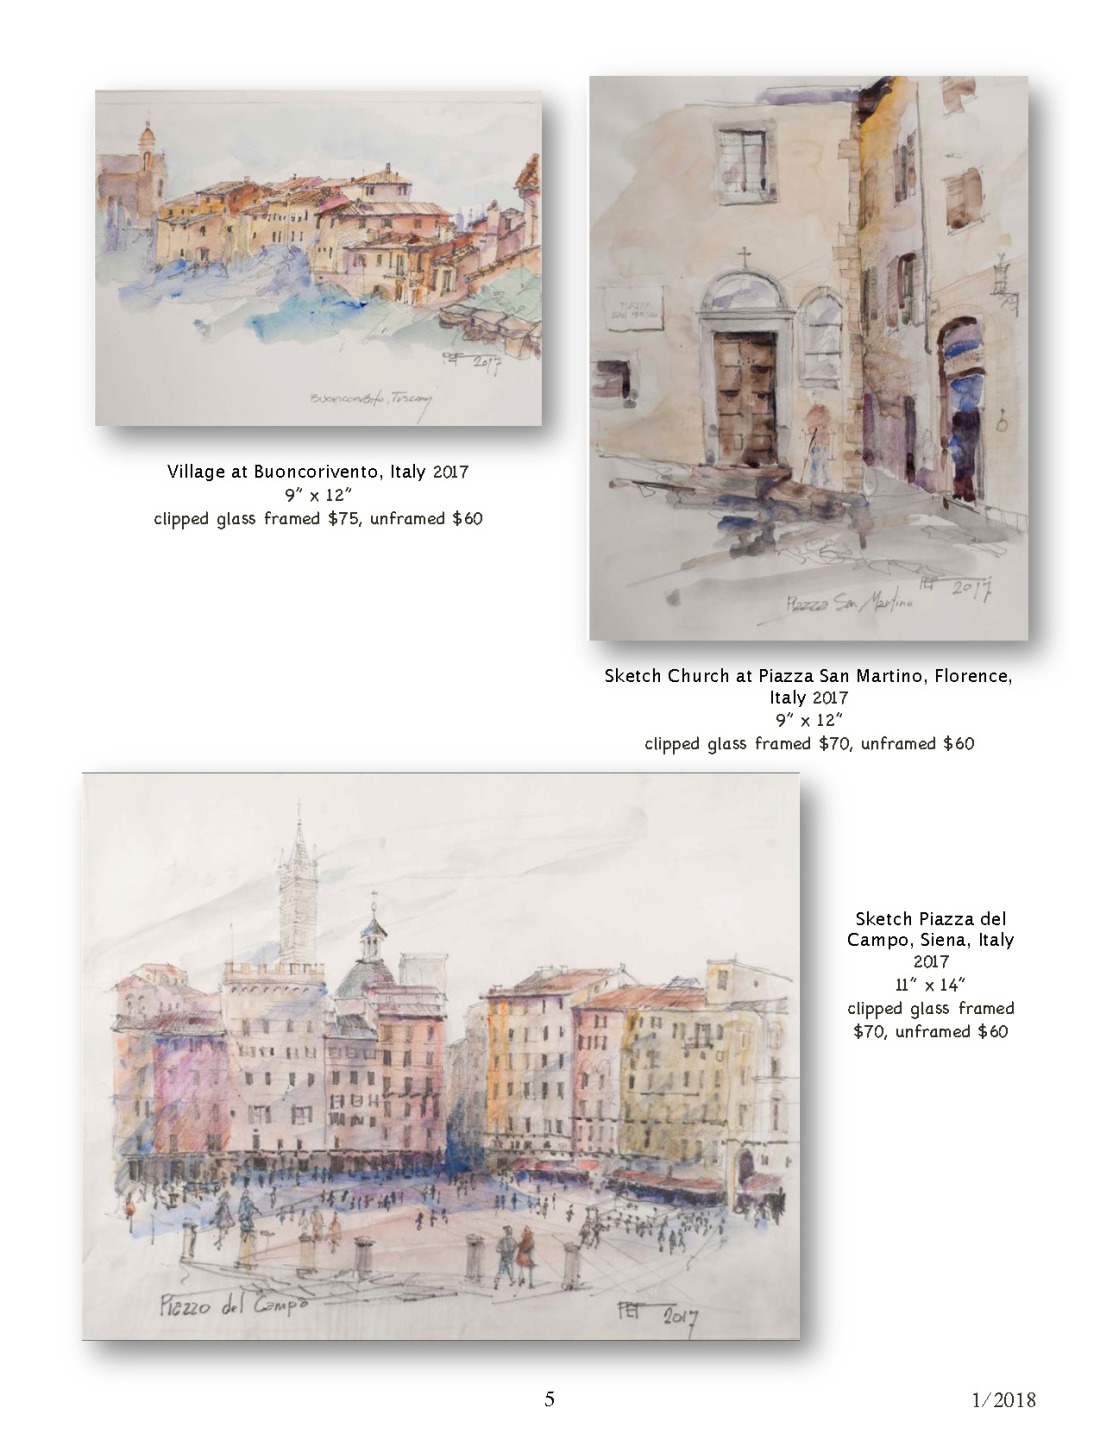 Paul Franks Watercolor Catalog-4 Italian Village_Landscapes1_11_18_Page_5